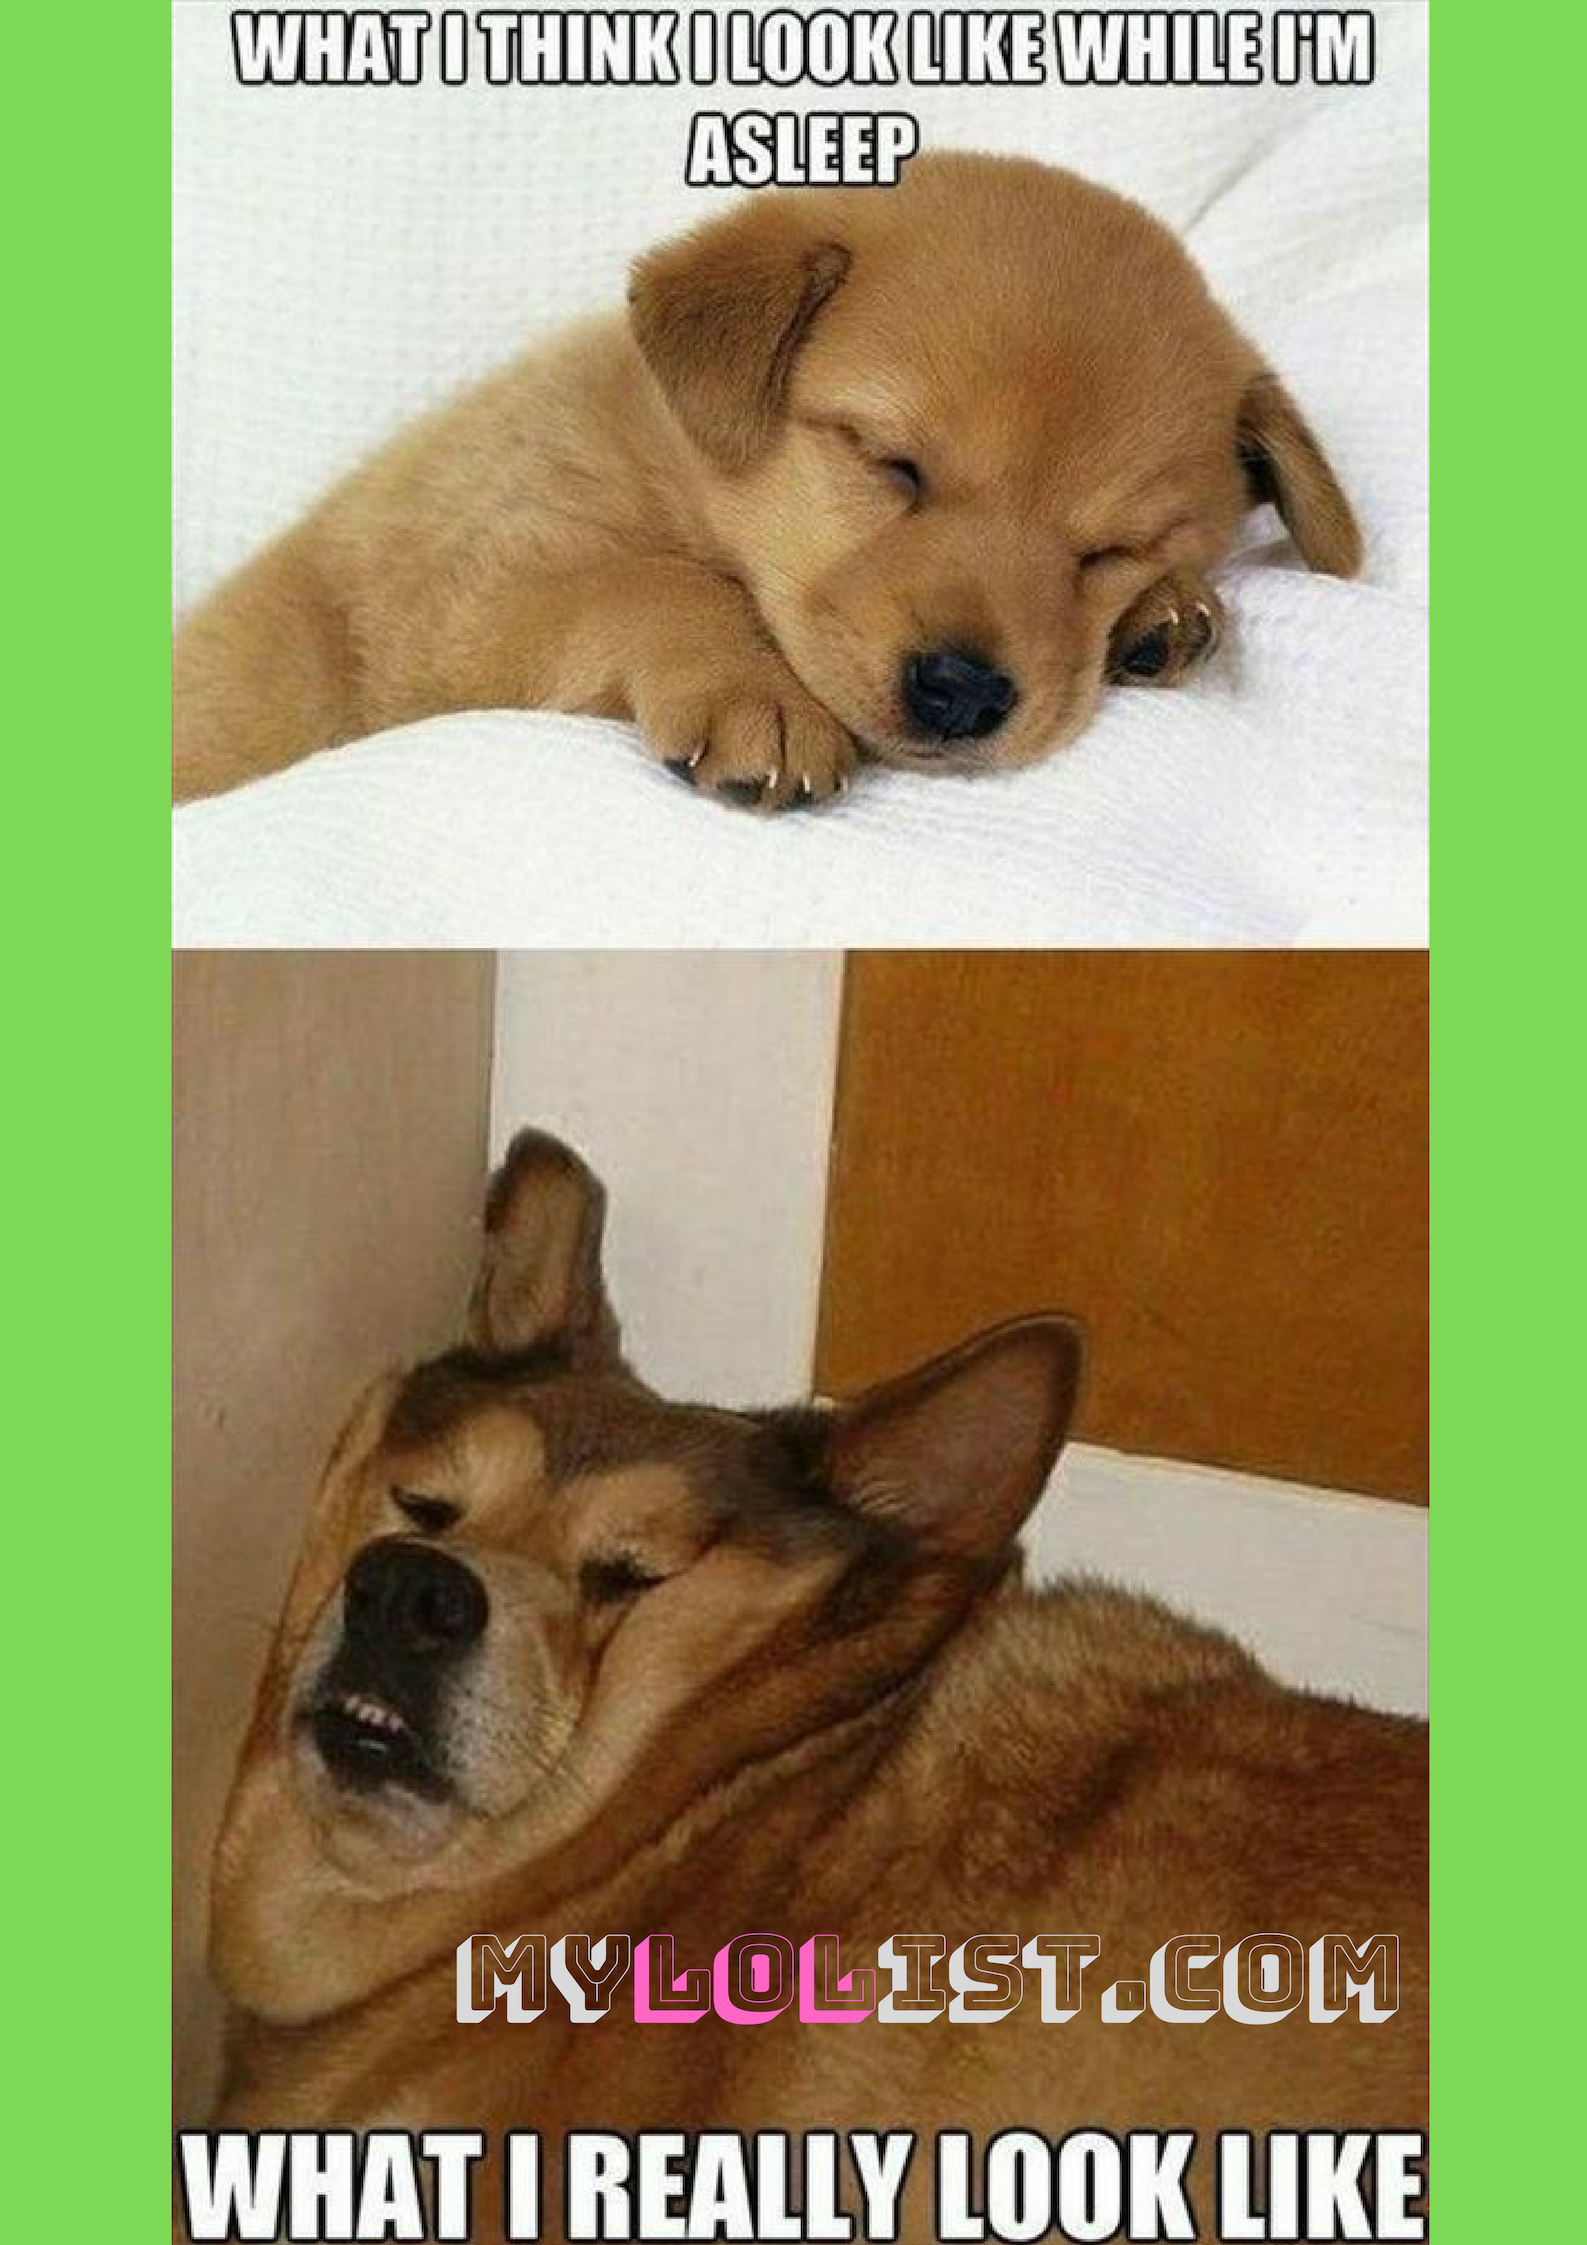 Funny Quotes Funny Photos There Is A Huge Difference Of How People Think They Look Lkike While They Ar Funny Animal Jokes Funny Animal Memes Funny Dog Memes